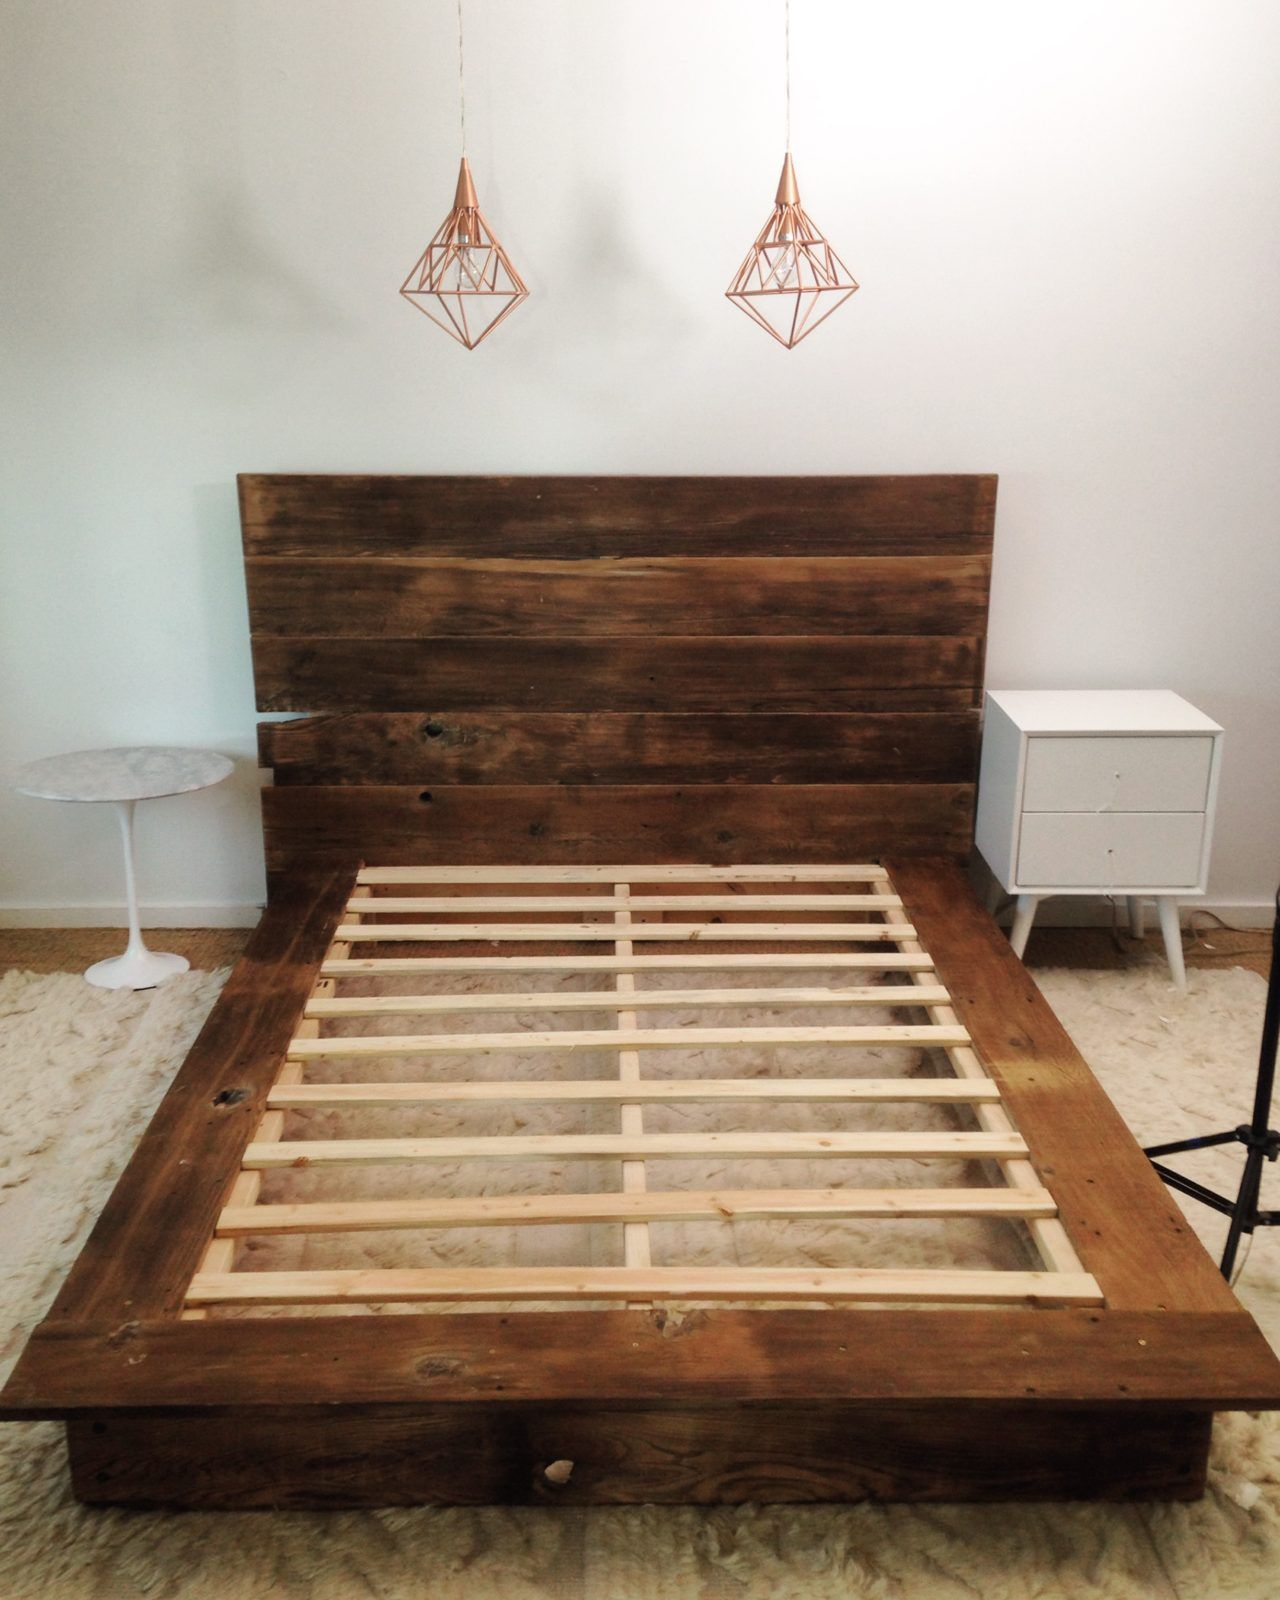 Img 1353 Wooden Queen Bed Frame Frames Diy Build